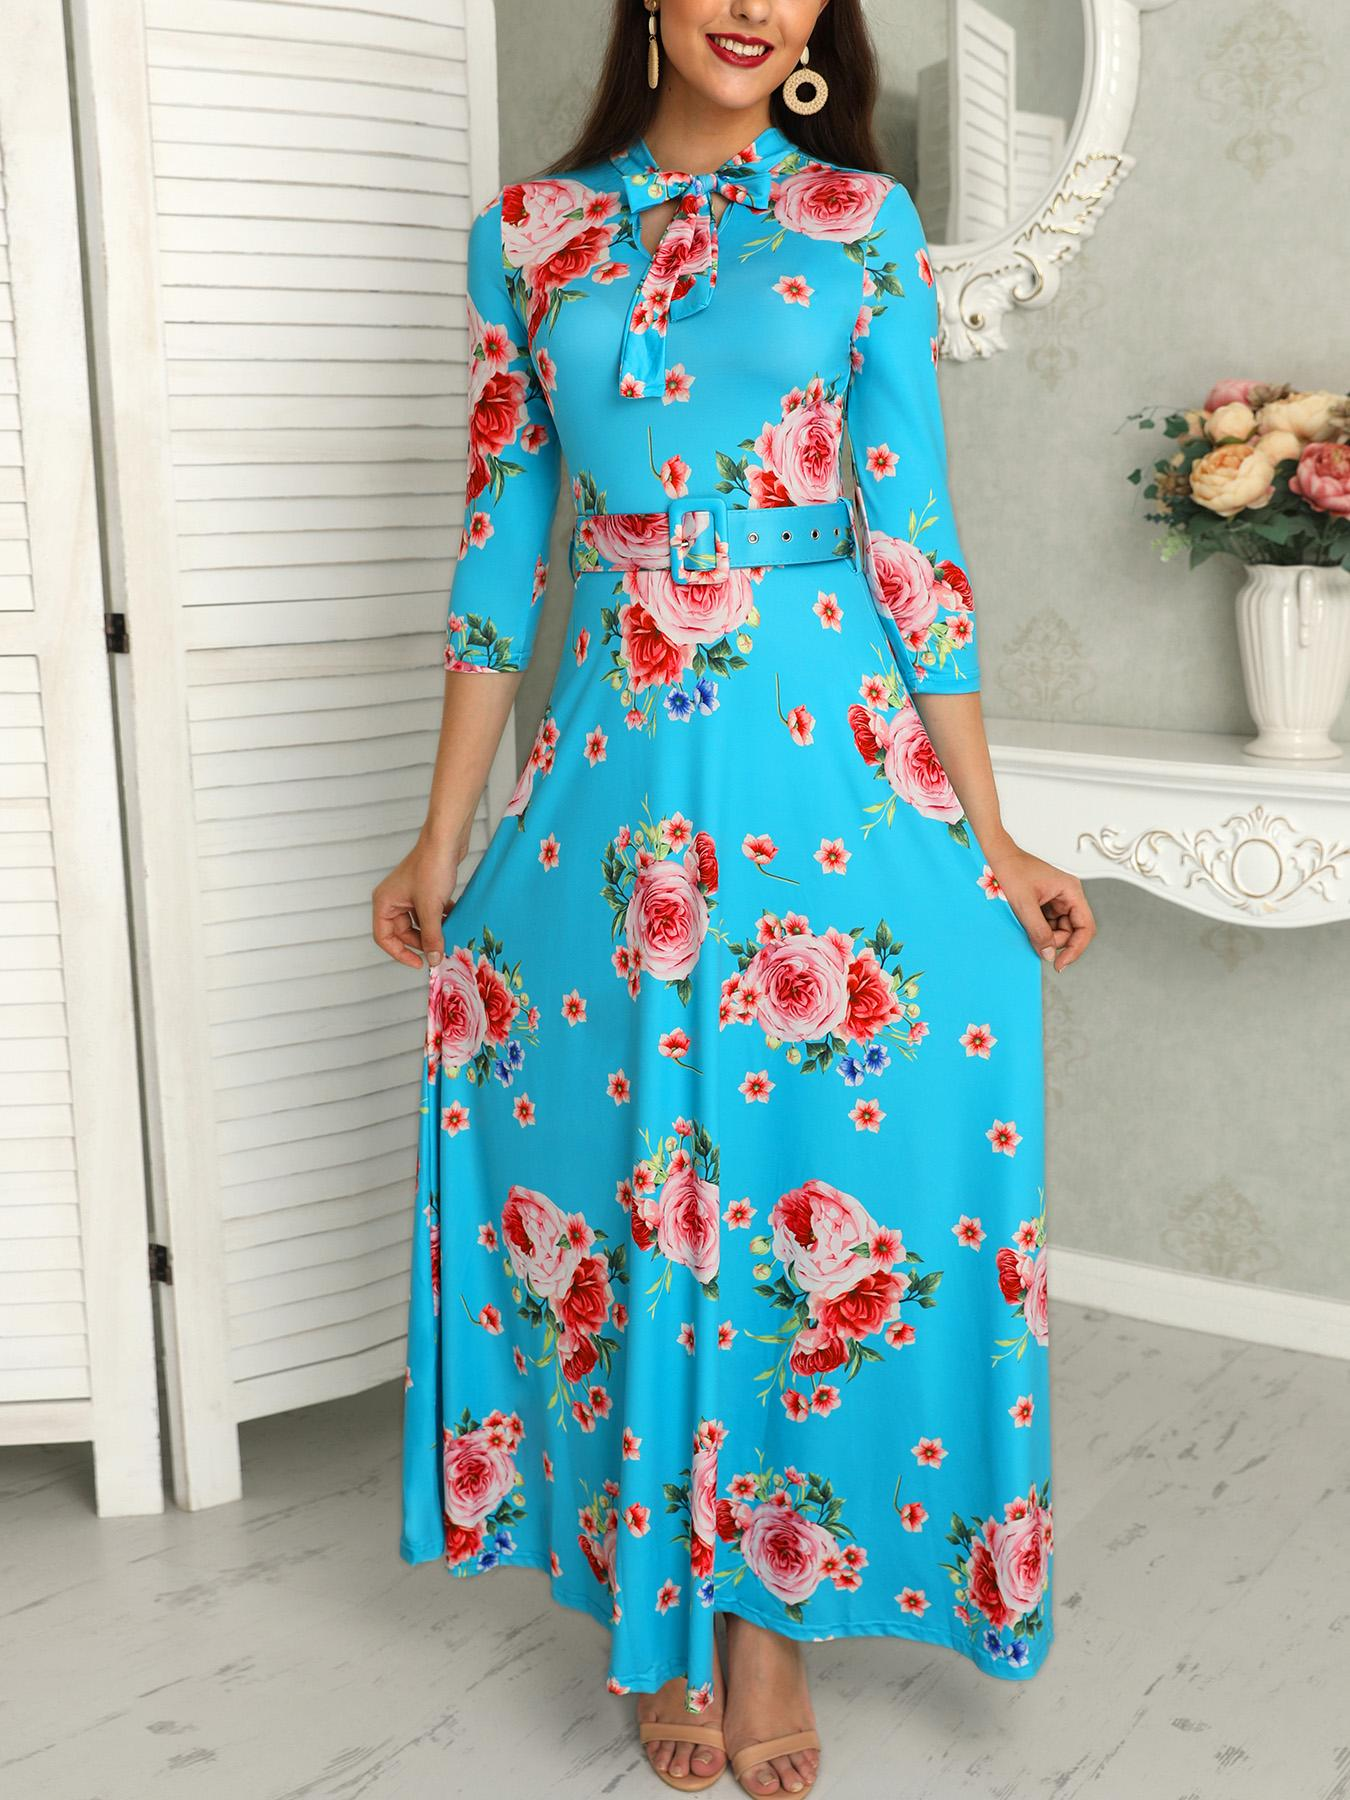 ivrose / Floral Print Tied Neck Belted Maxi Dress